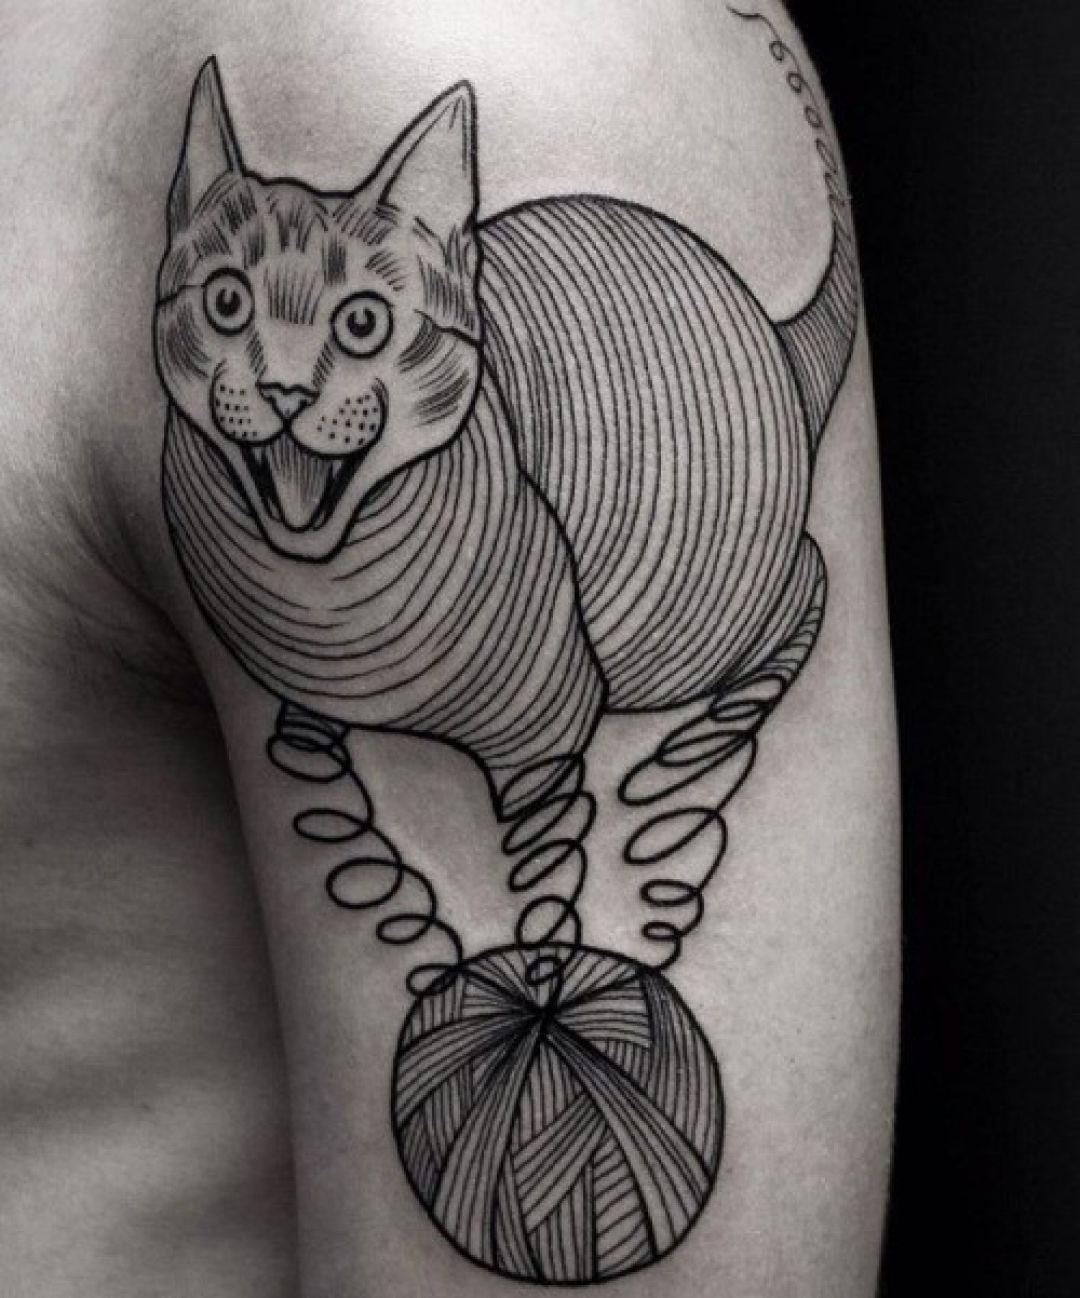 Cat Shoulder Tattoo Design (290767) - Best  Tattoos